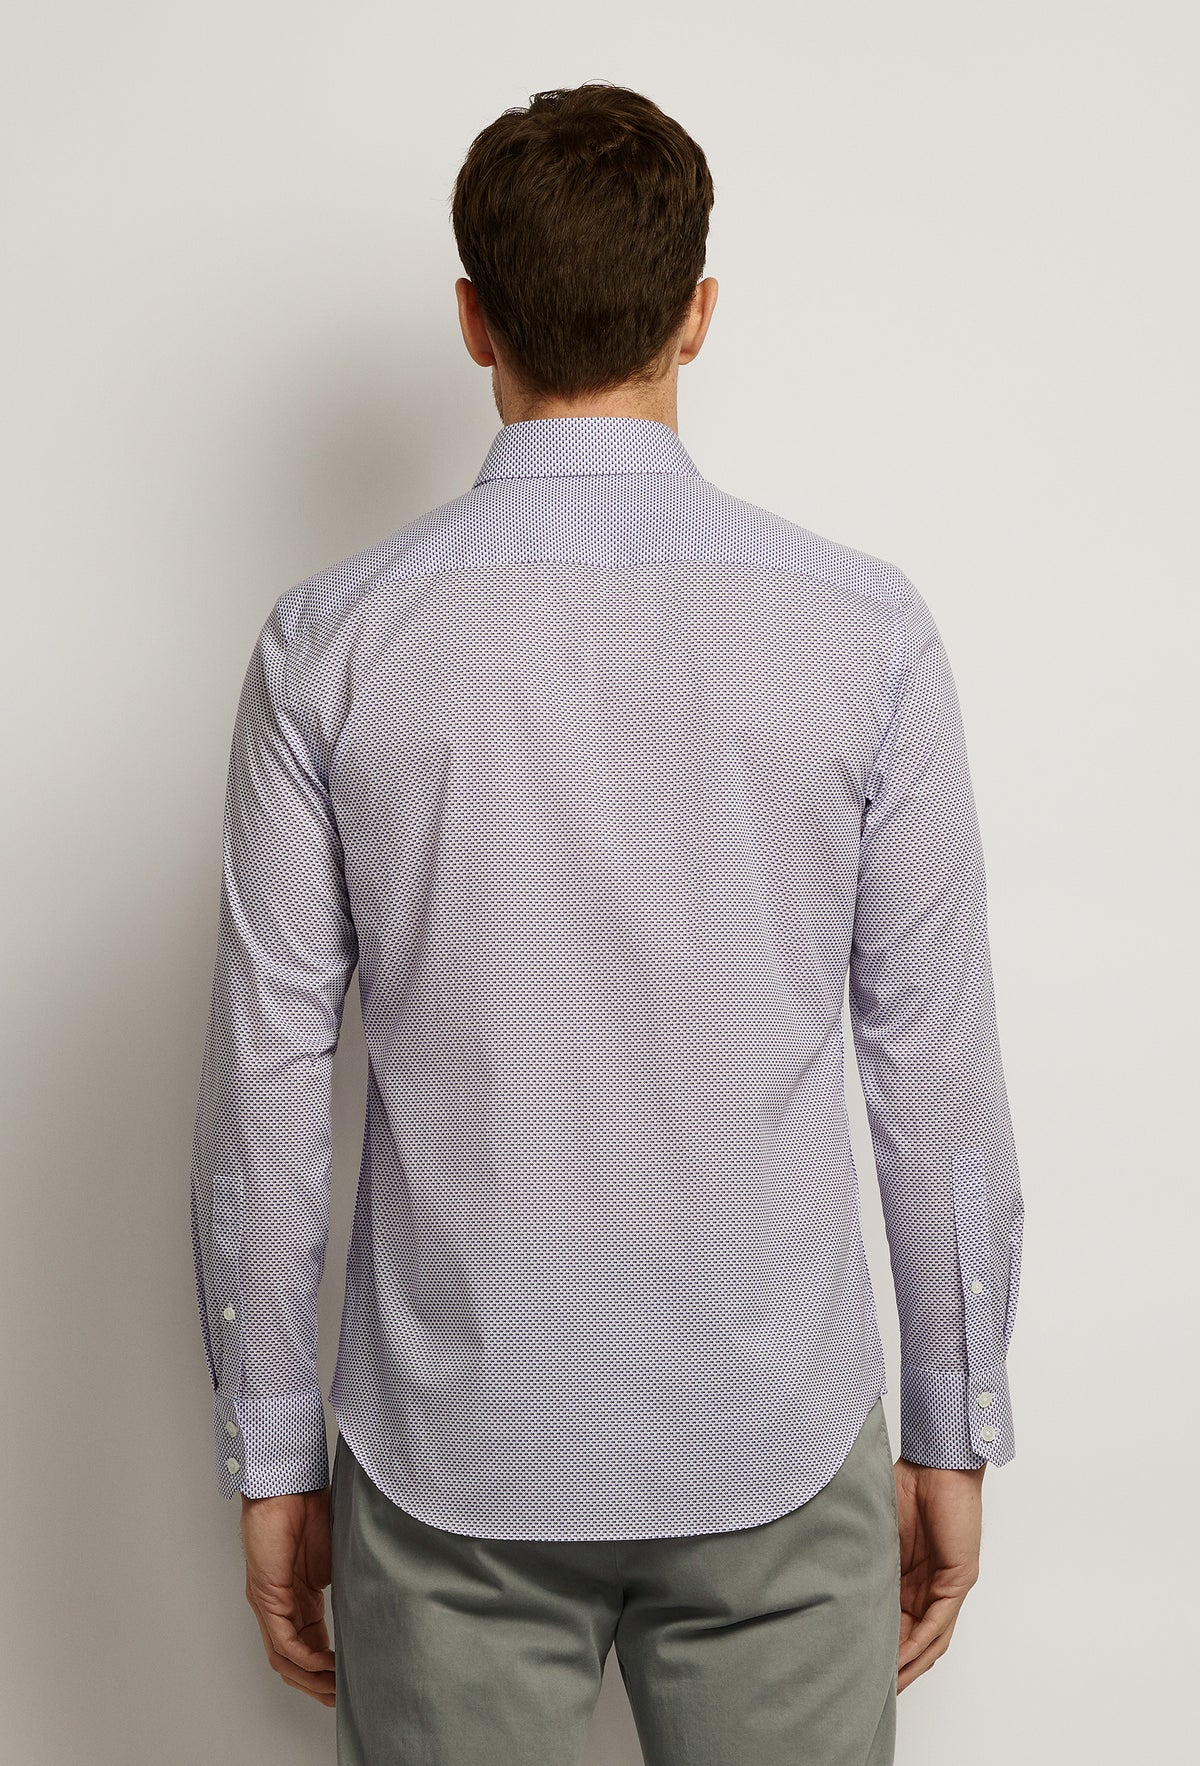 ZACHARY-PRELL-Wilson-ShirtsModern-Menswear-New-Dress-Code